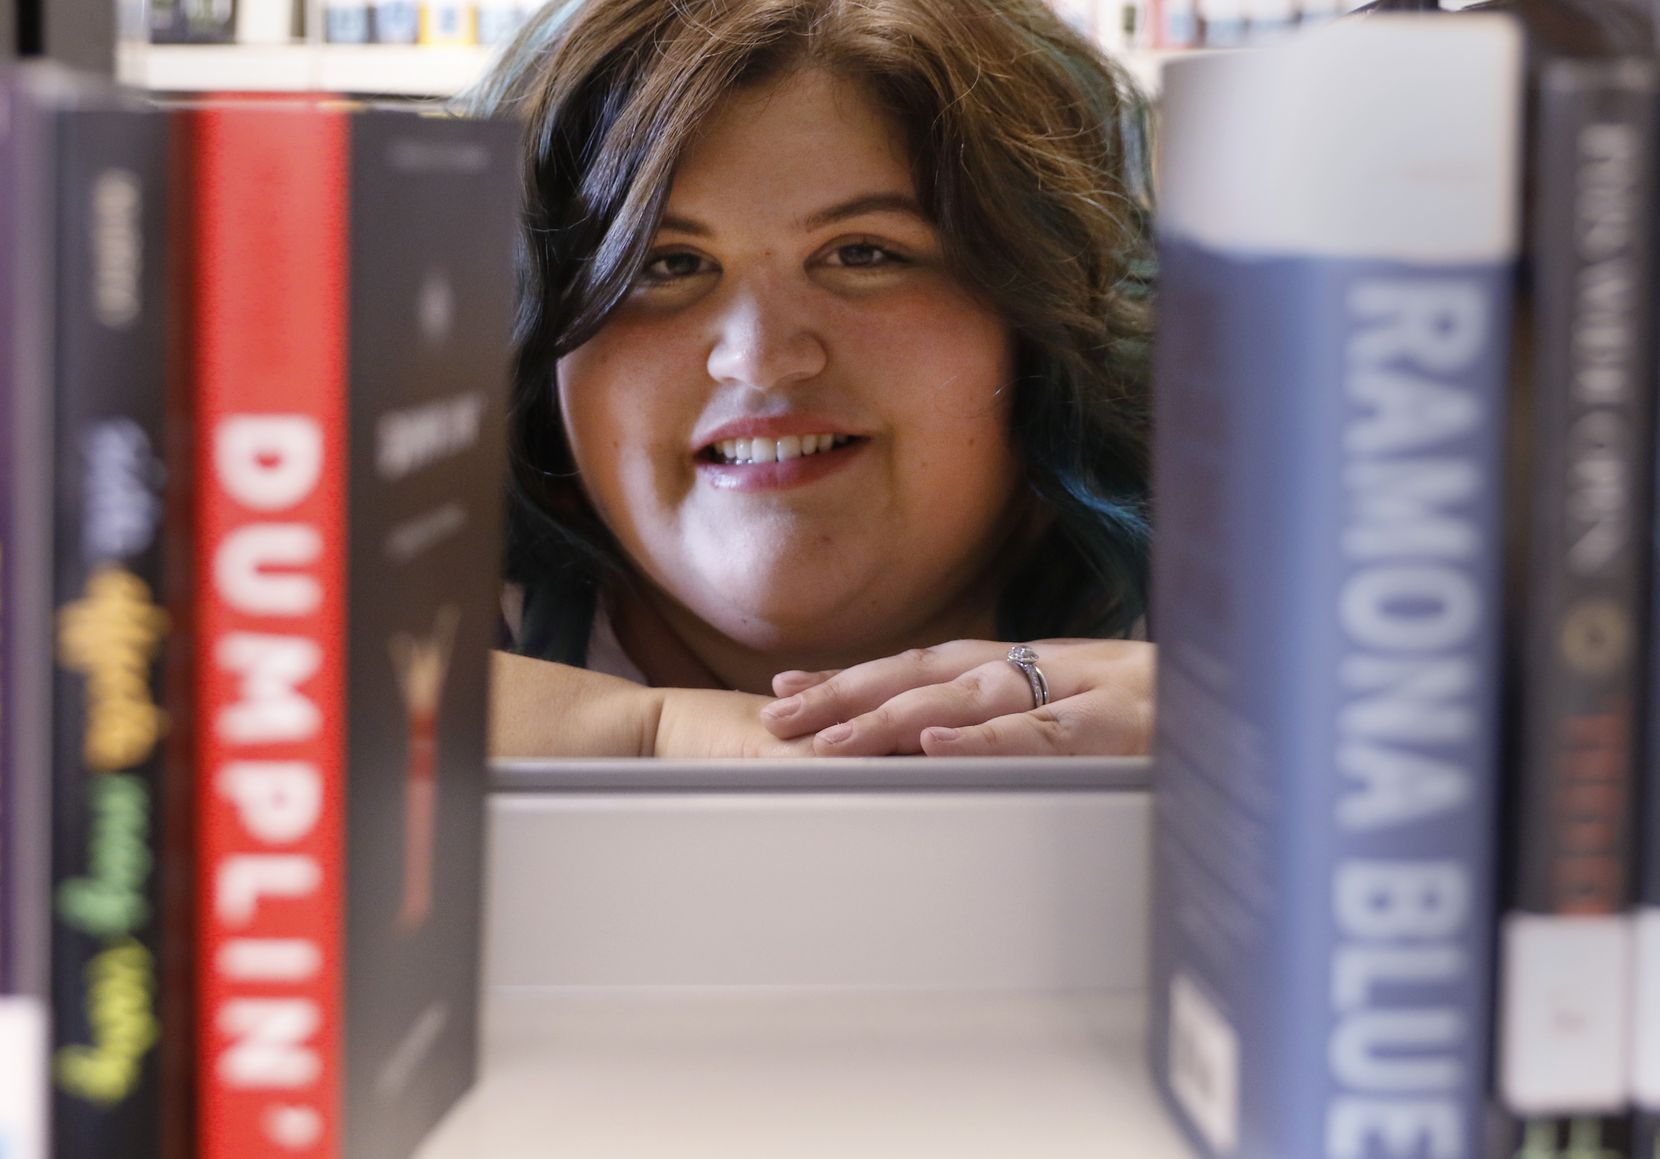 Julie Murphy, the author of 'Dumplin,'' poses for a portrait at the South Irving Library on Wednesday, June 14, 2017.